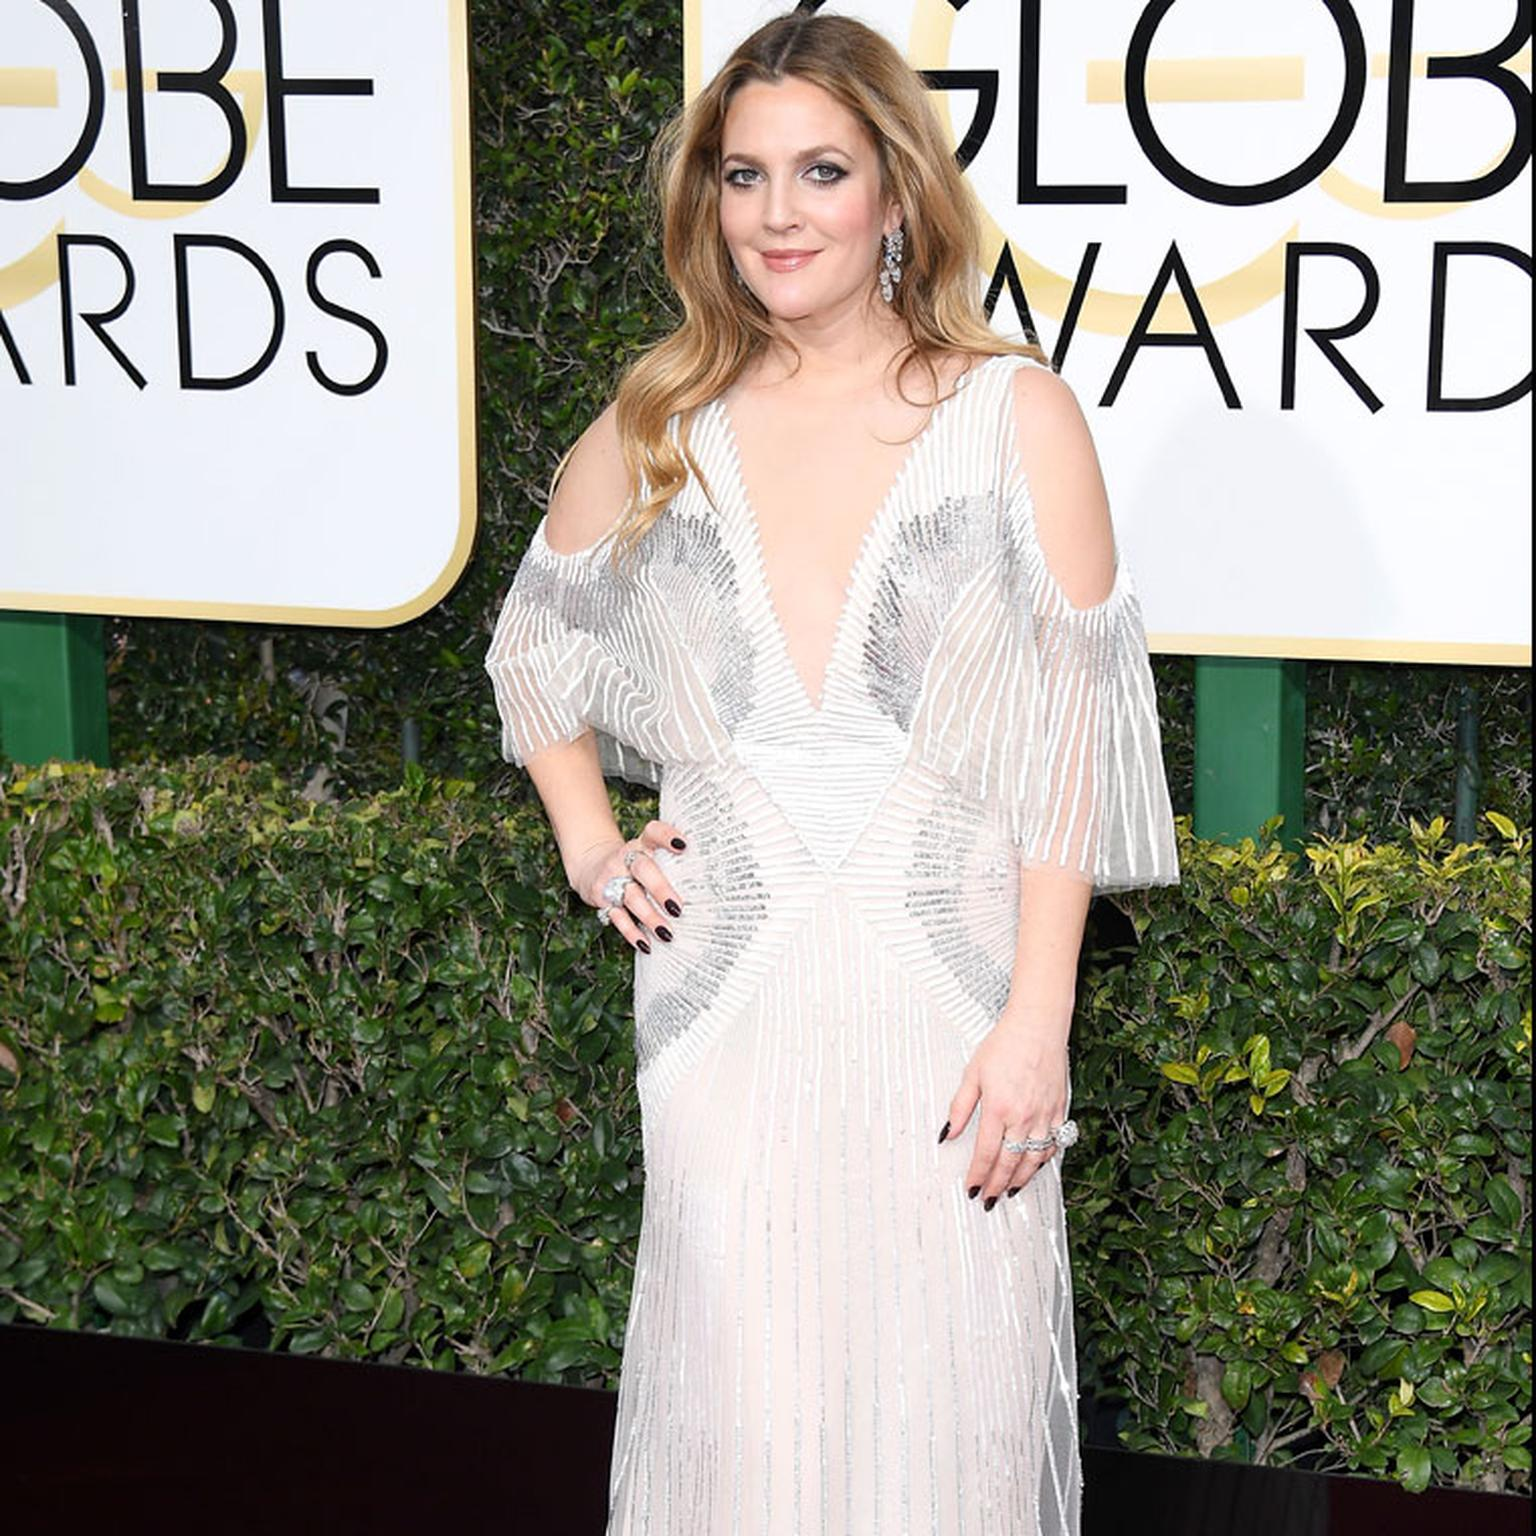 Drew Barrymore wears Harry Winston